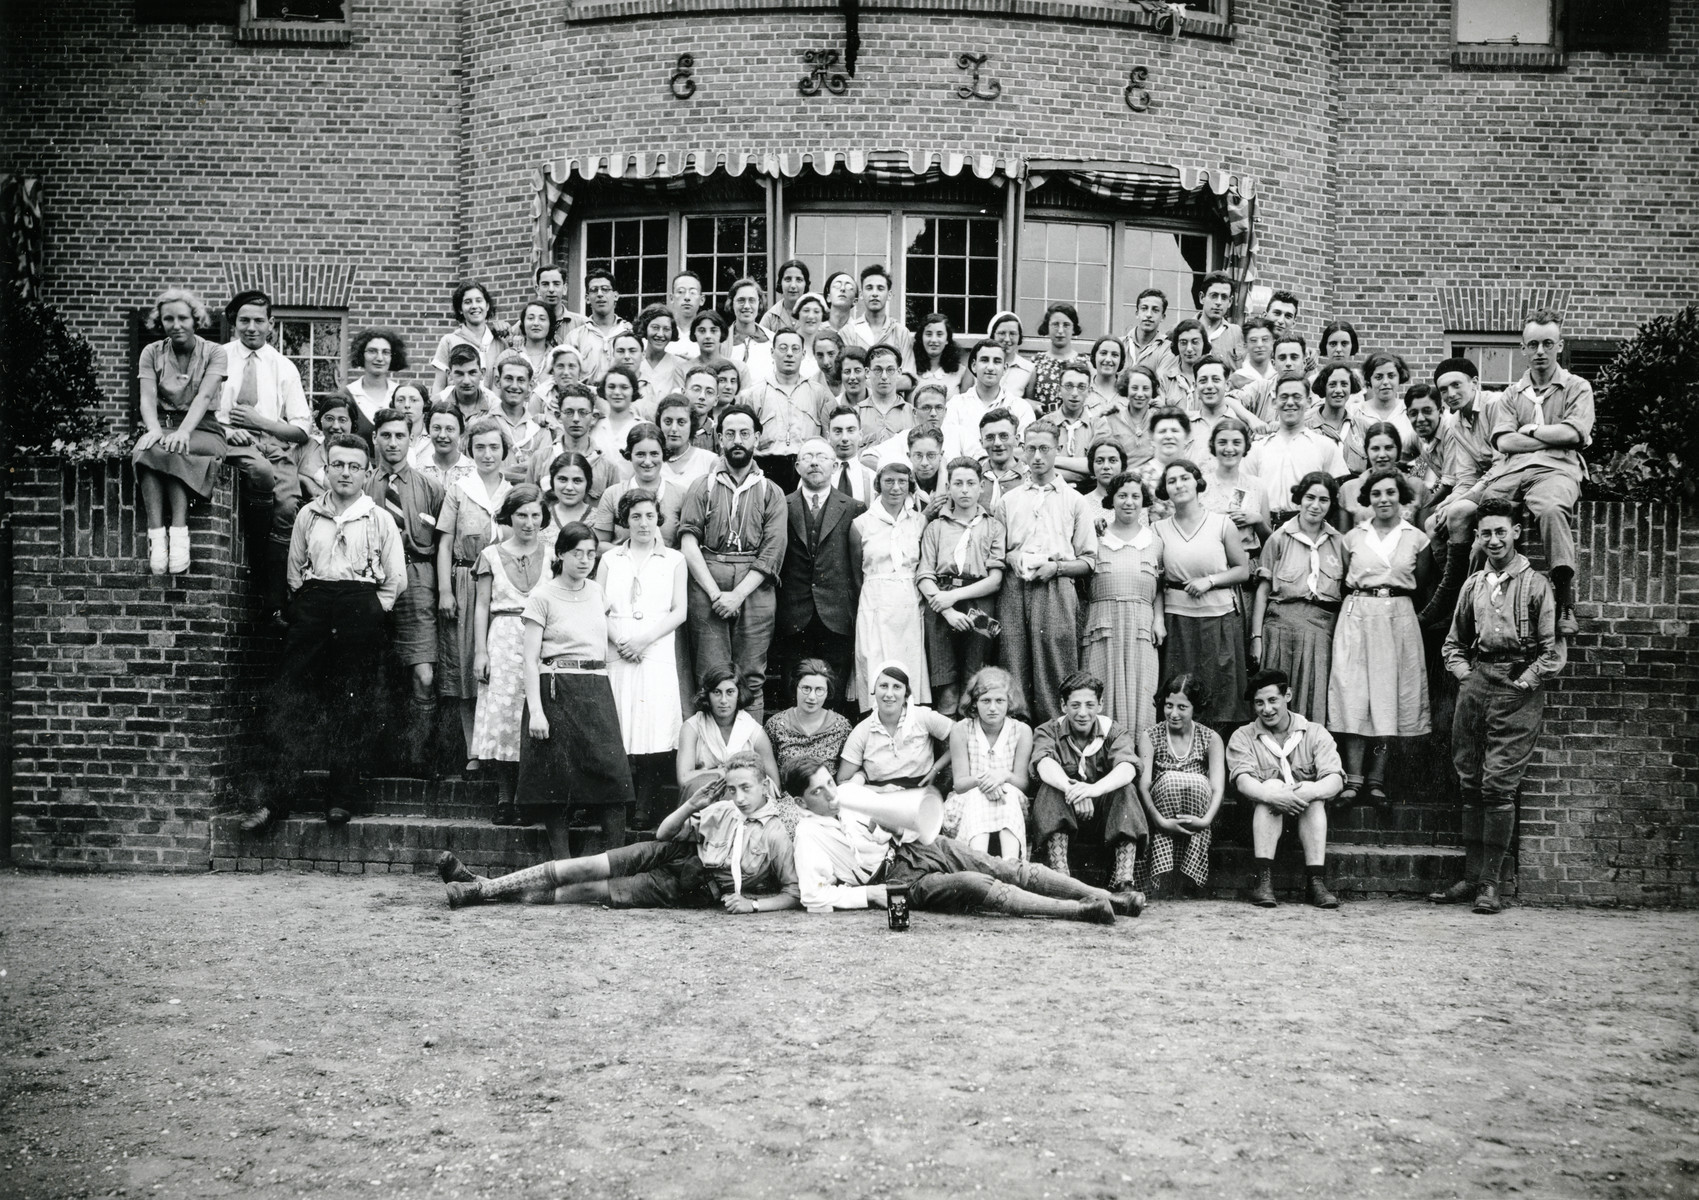 Group portrait of a Mizrachi religious Zionist youth group in The Netherlands.